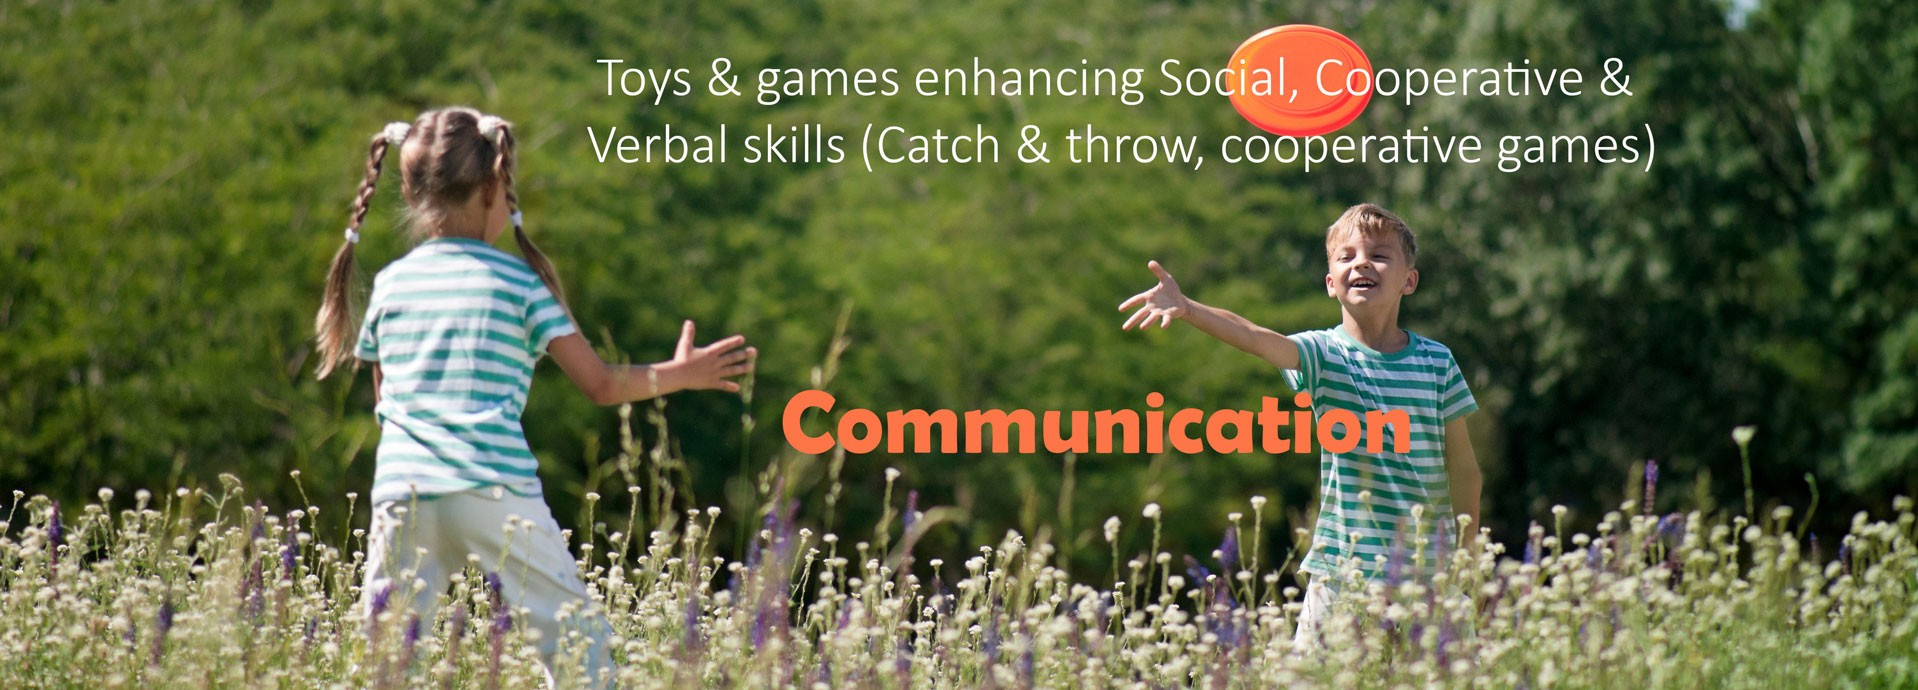 Communication: Toys & games enhancing Social, Cooperative & Verbal skills (Catch & throw, cooperative games